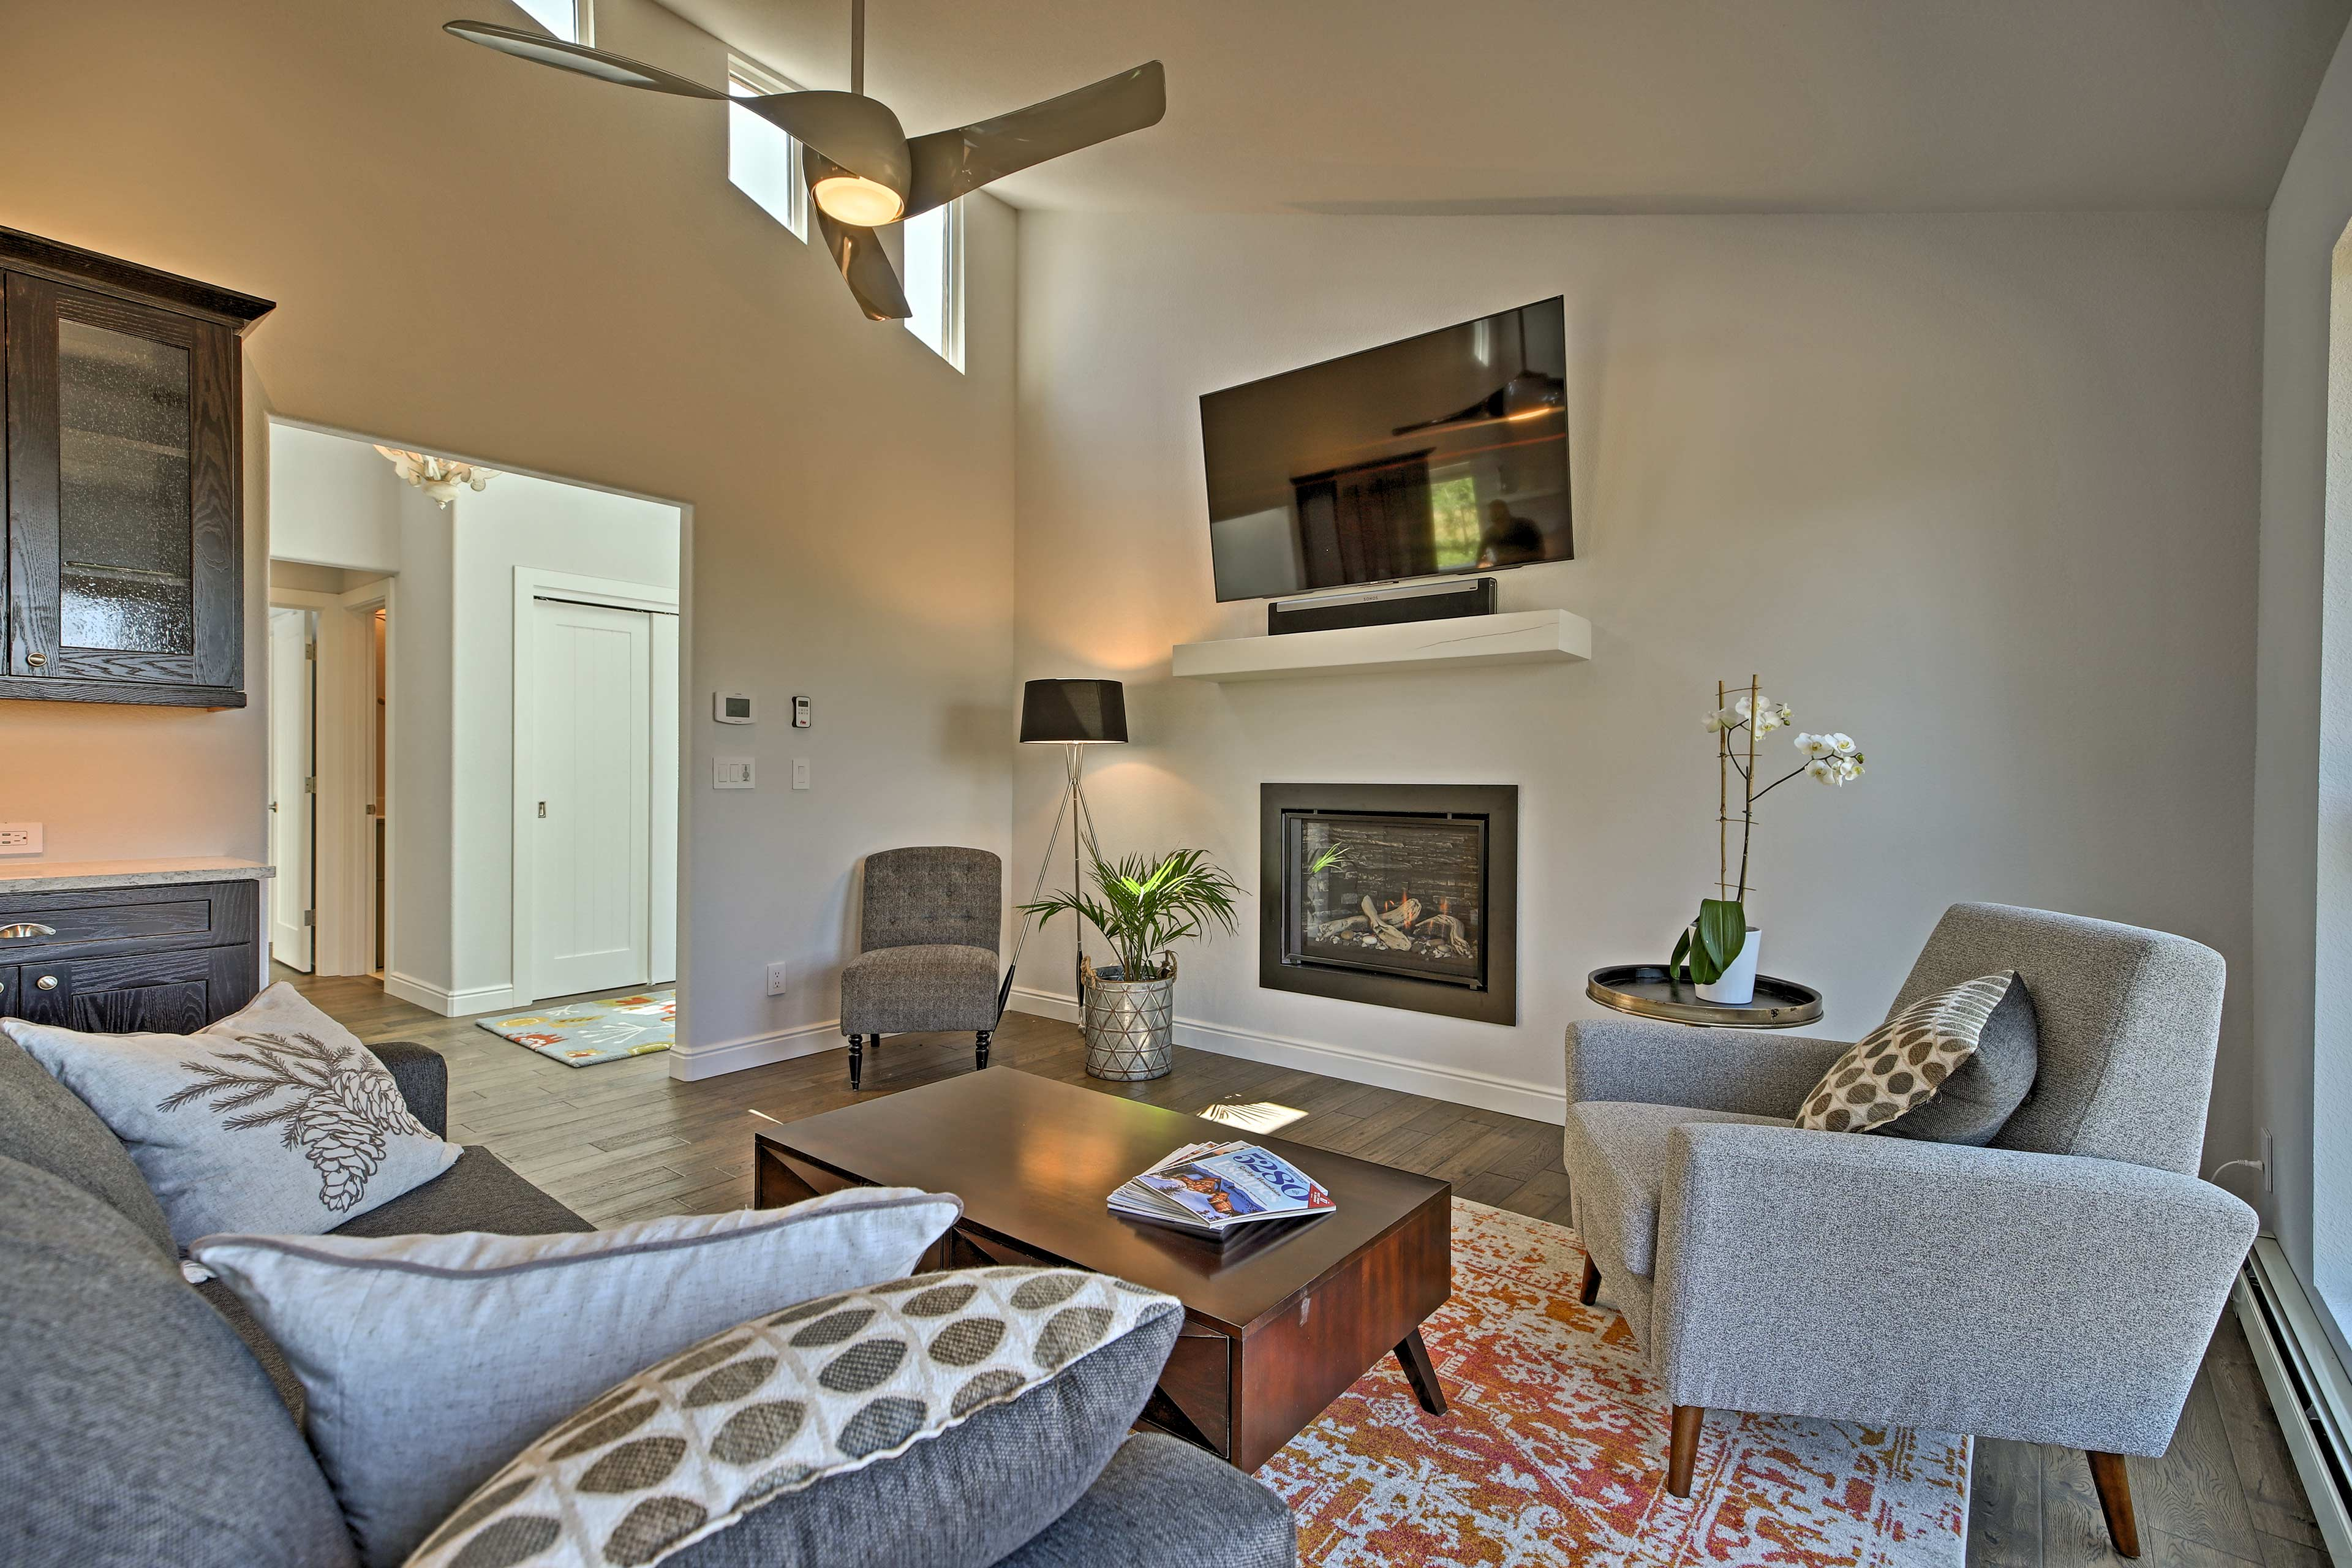 Switch into vacation mode as you sink into the comfortable living room sofa.